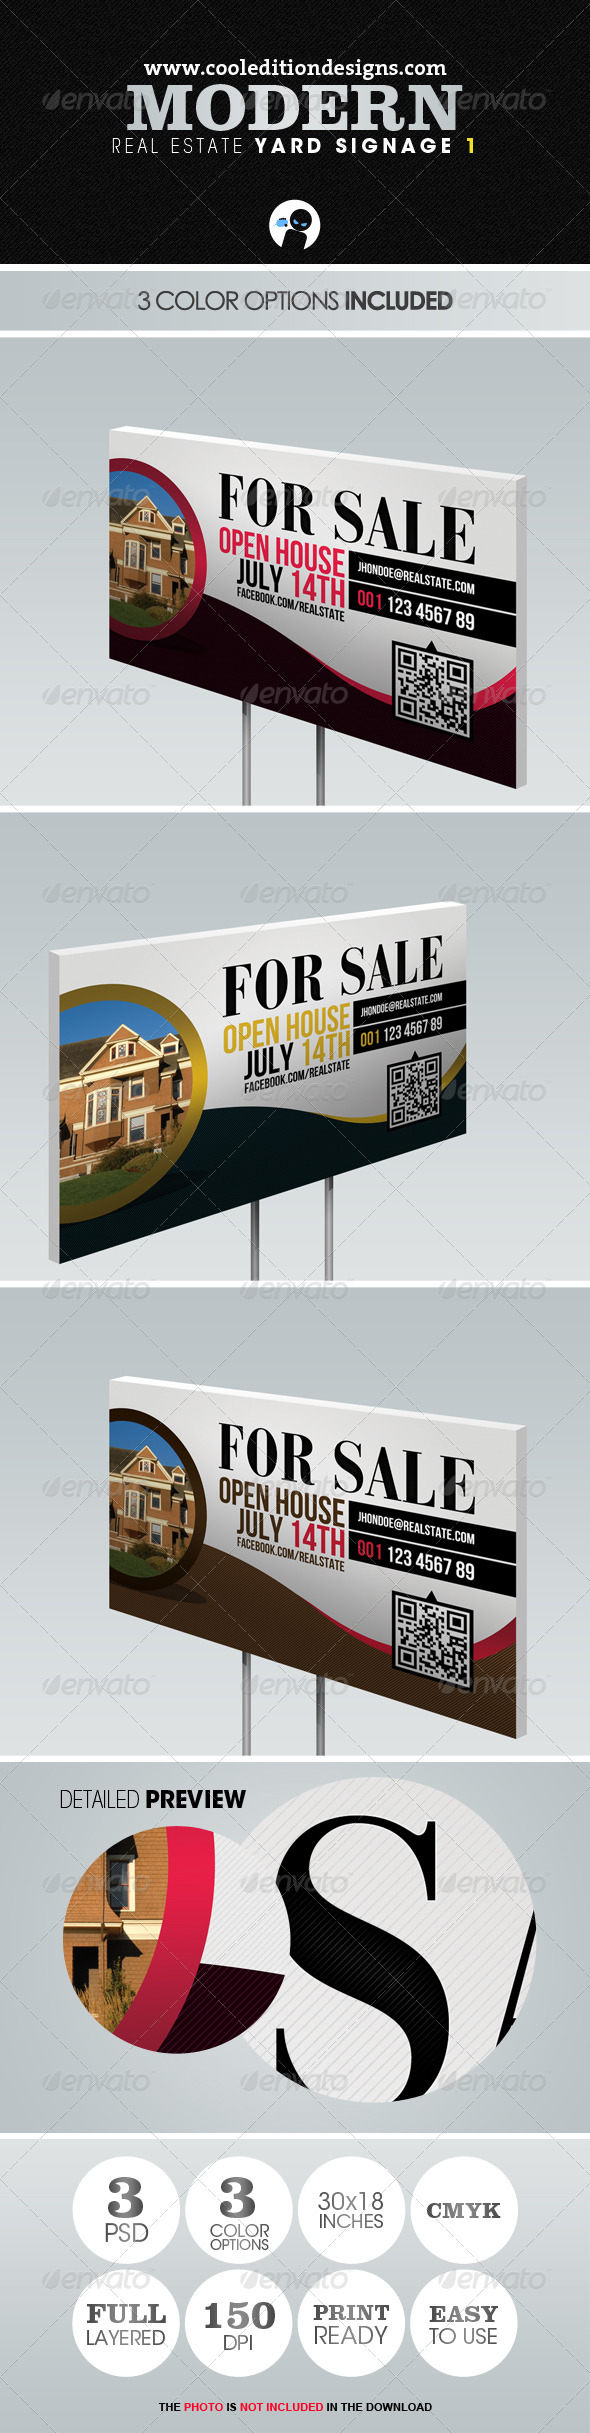 Modern Real Estate Yard Signage 1 - Signage Print Templates